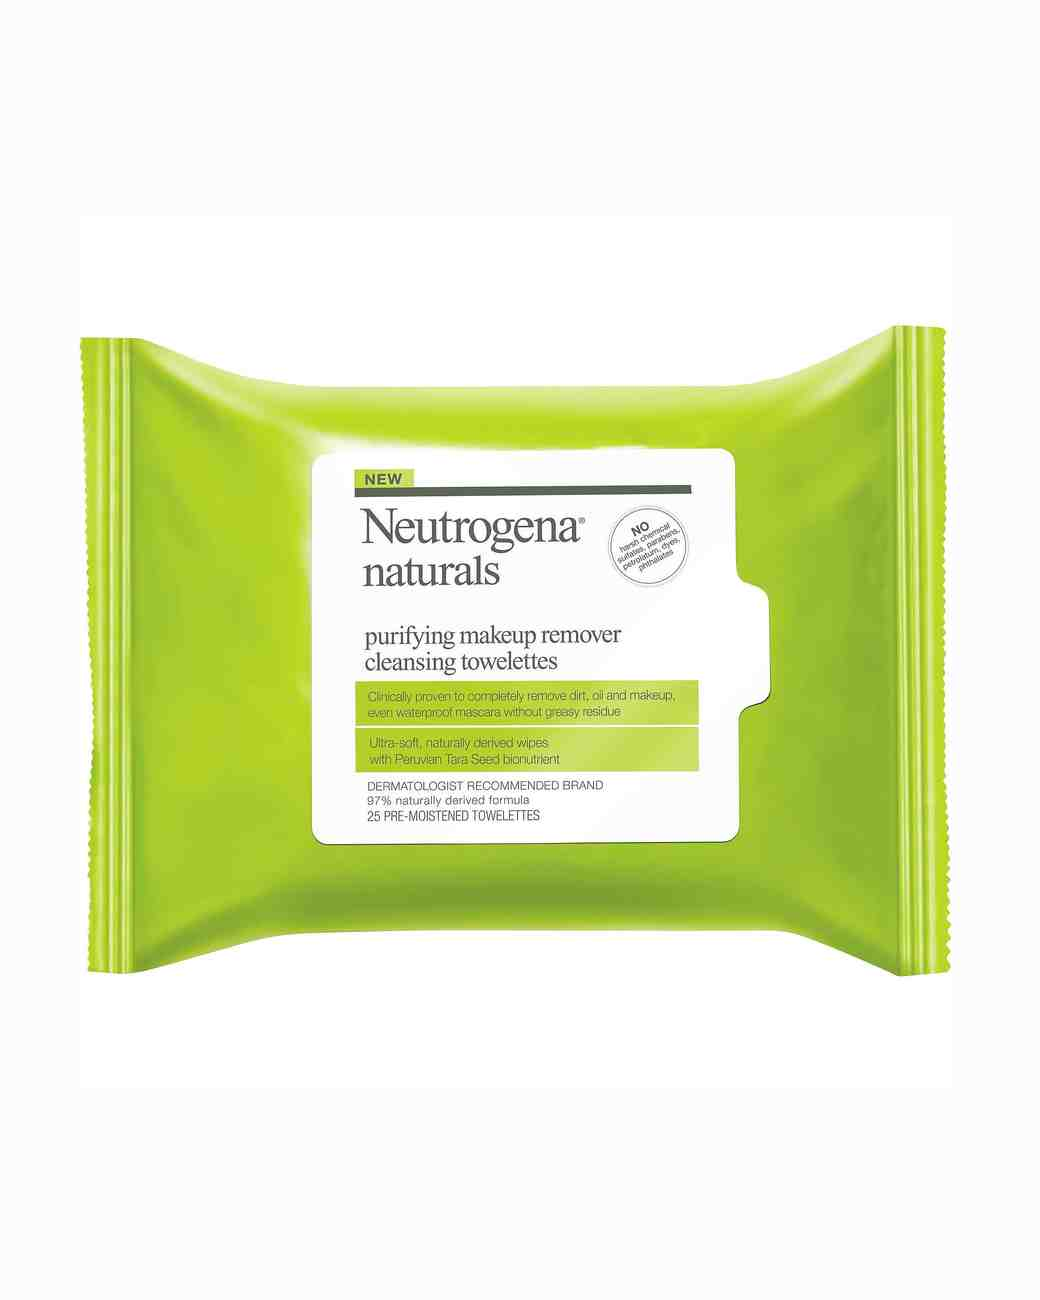 big-day-beauty-awards-neutrogena-naturals-cleansing-towelettes-0216.jpg